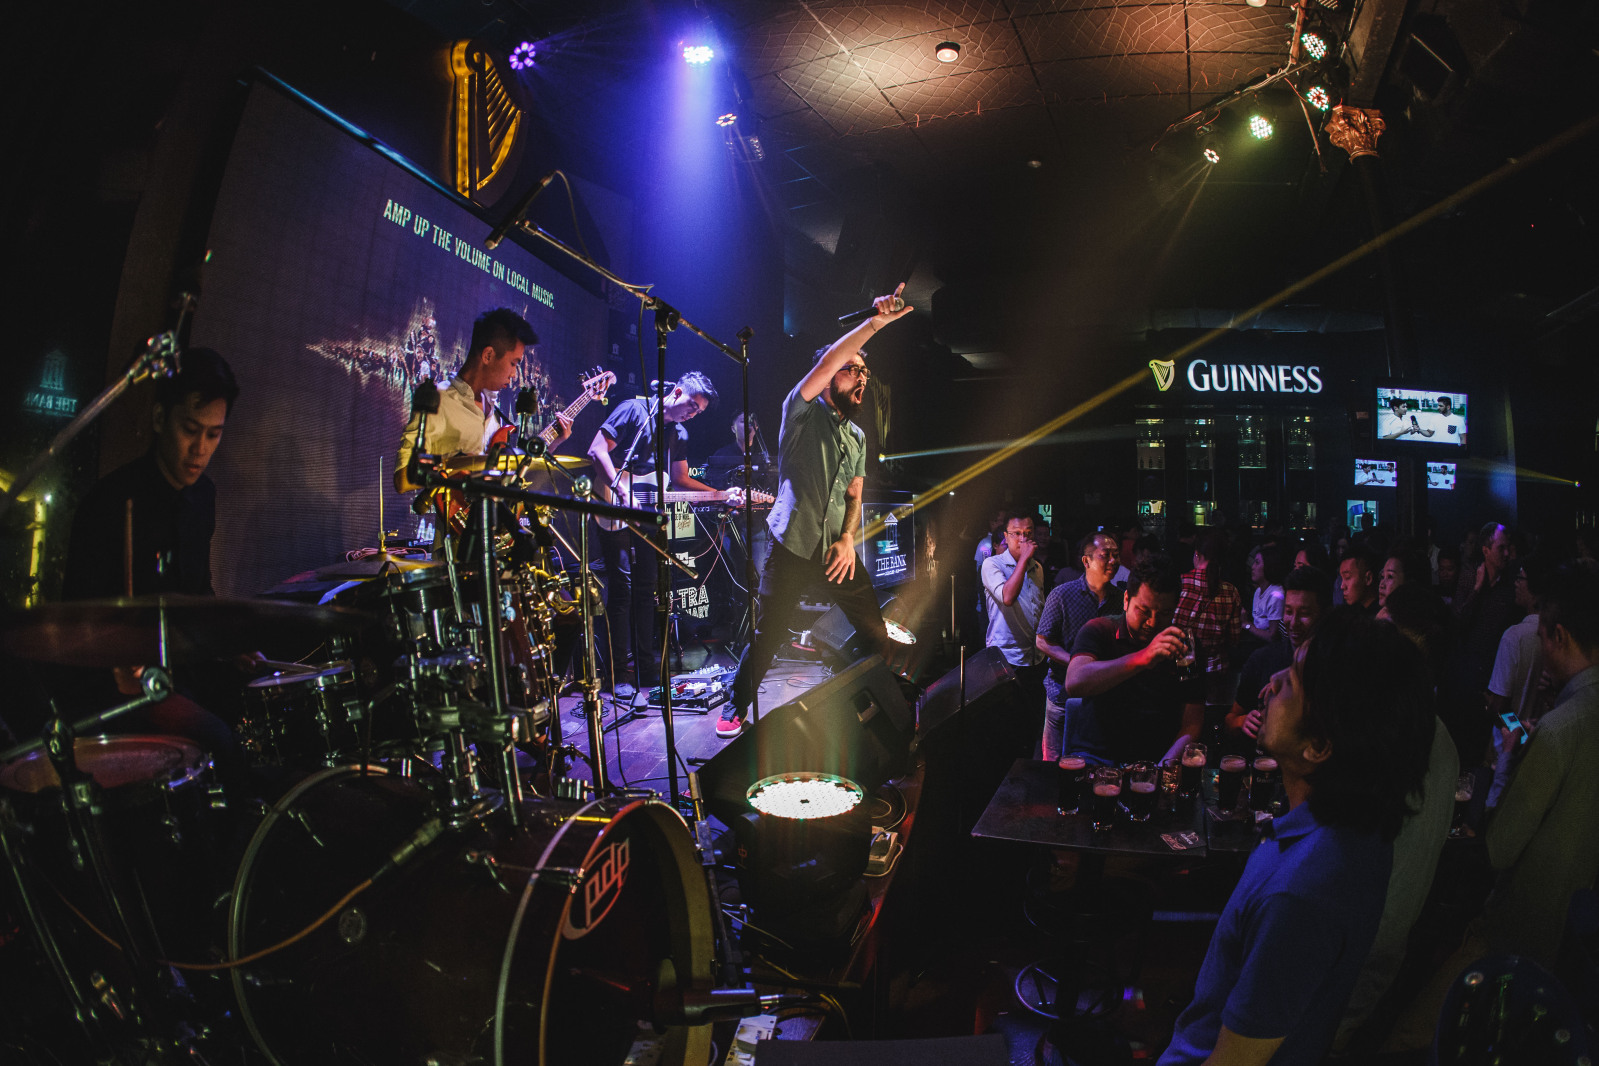 Image from Guinness AMPLIFY